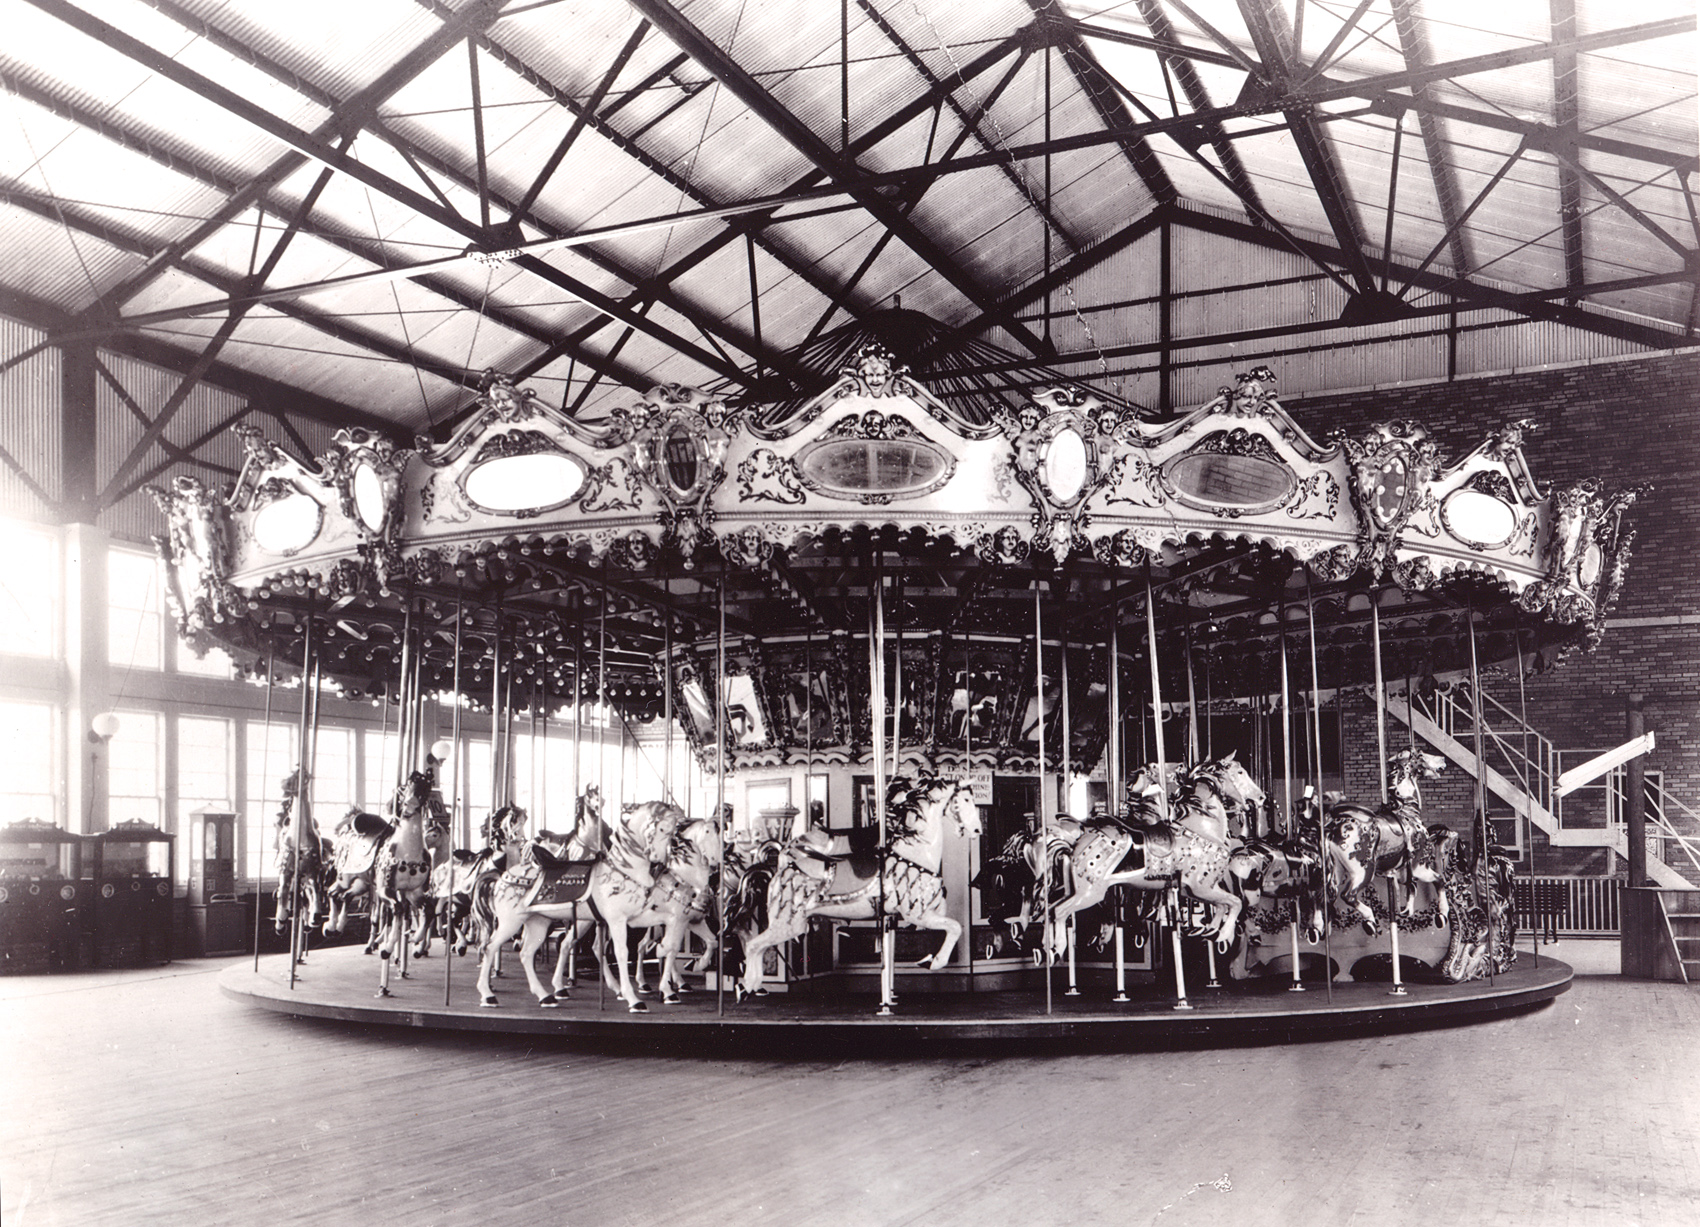 M. C. Illions and Sons Carousel Archives